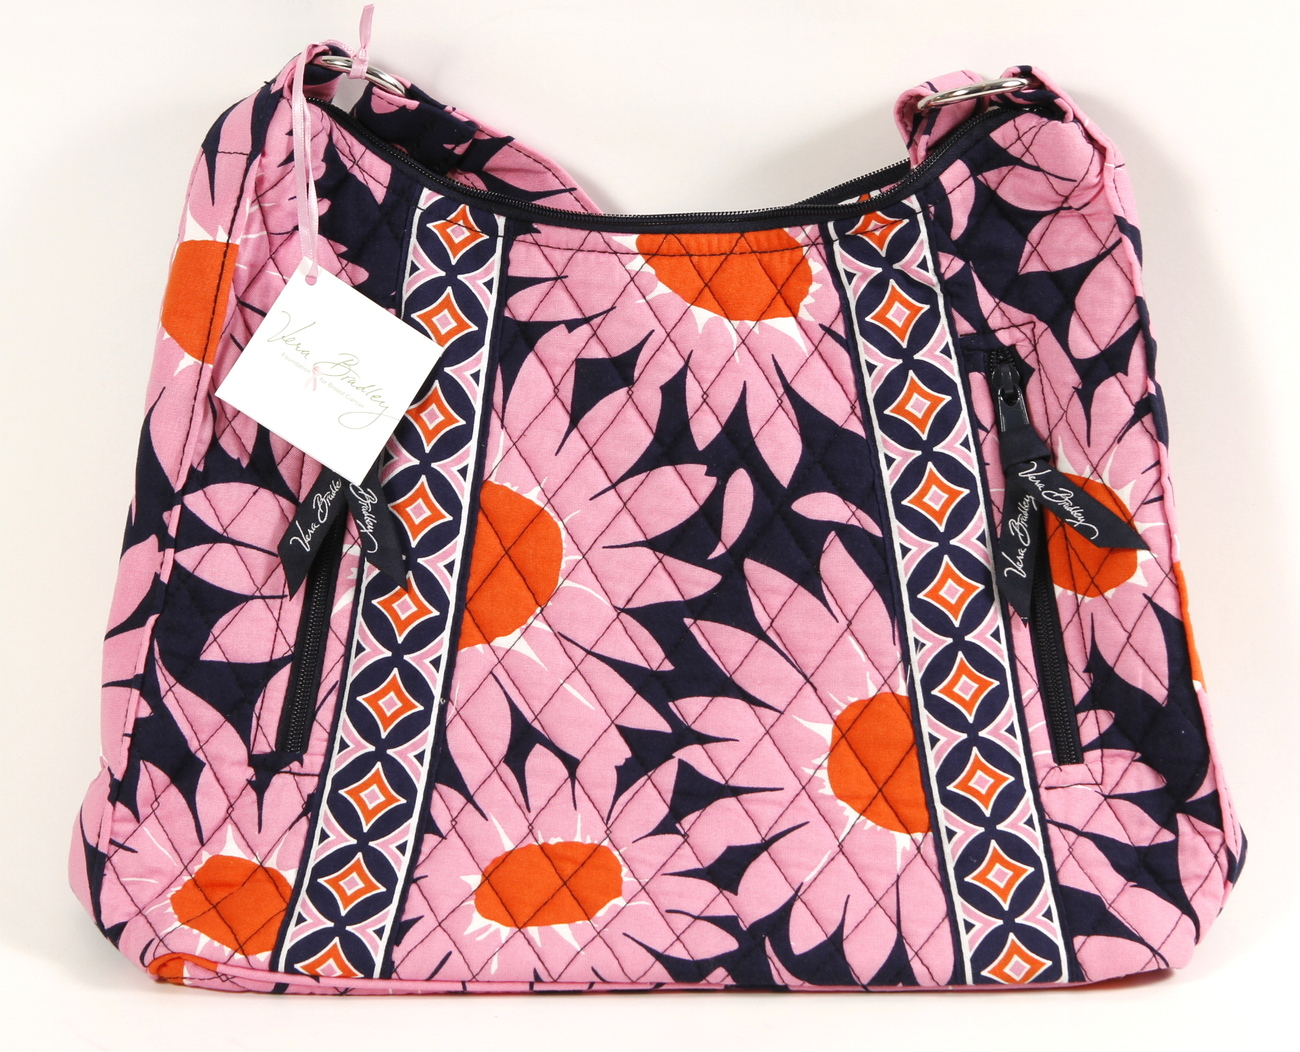 Primary image for Vera Bradley Lisa B Shoulder Bag Loves Me NWT